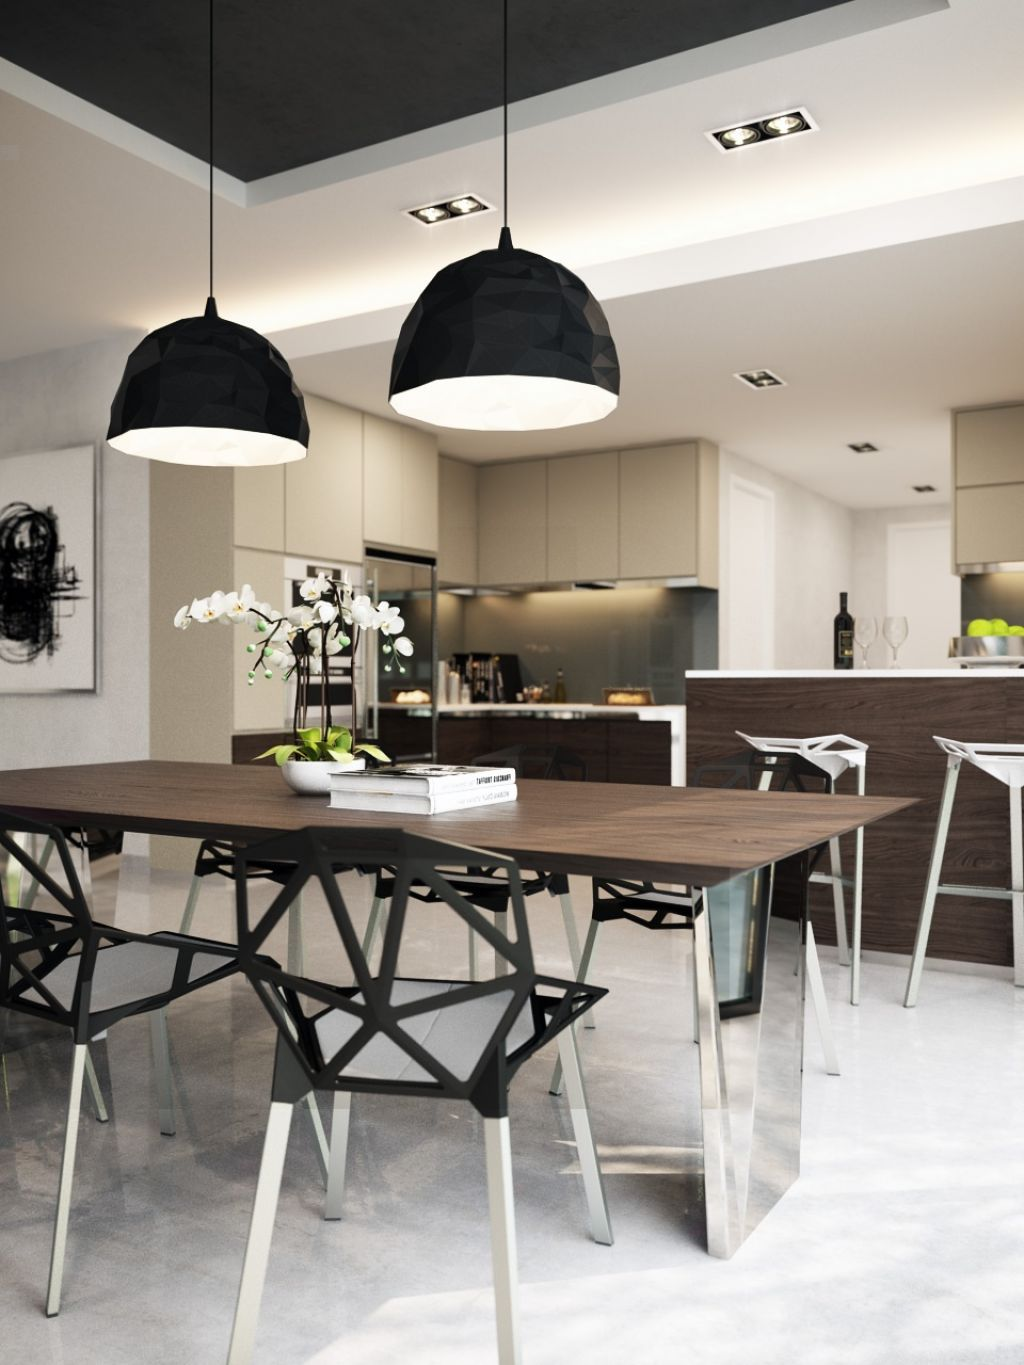 Marvelous Large Size Black Pendant Lamps Over The Dining Table In